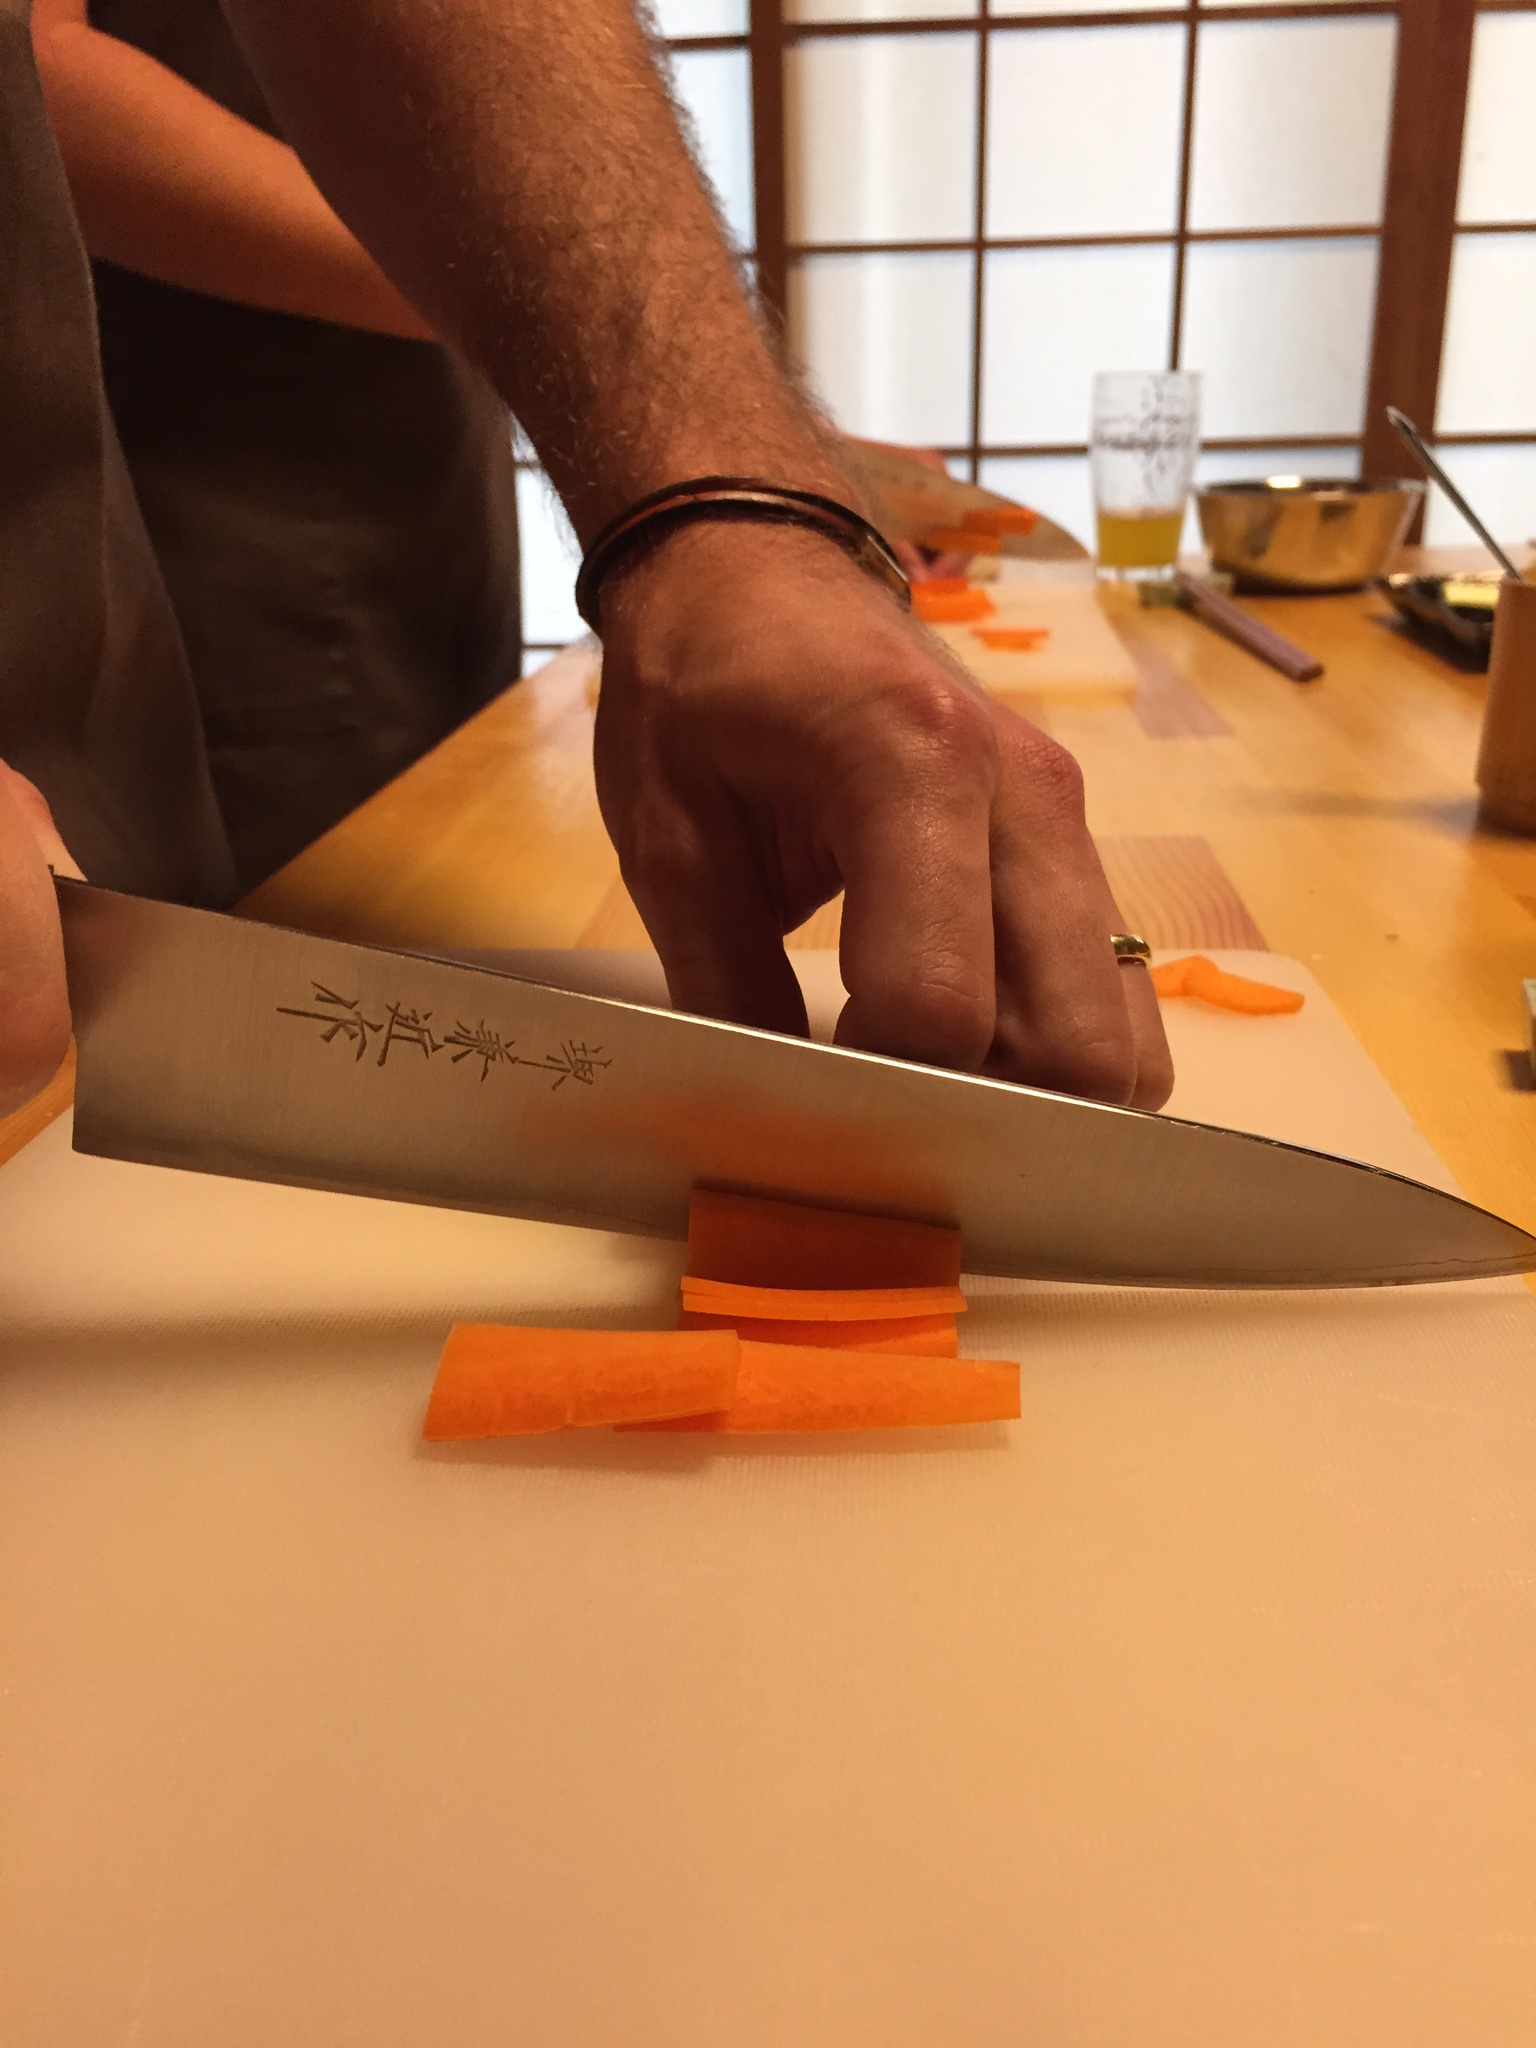 Cole chops carrots at our Osaka Eats cooking class